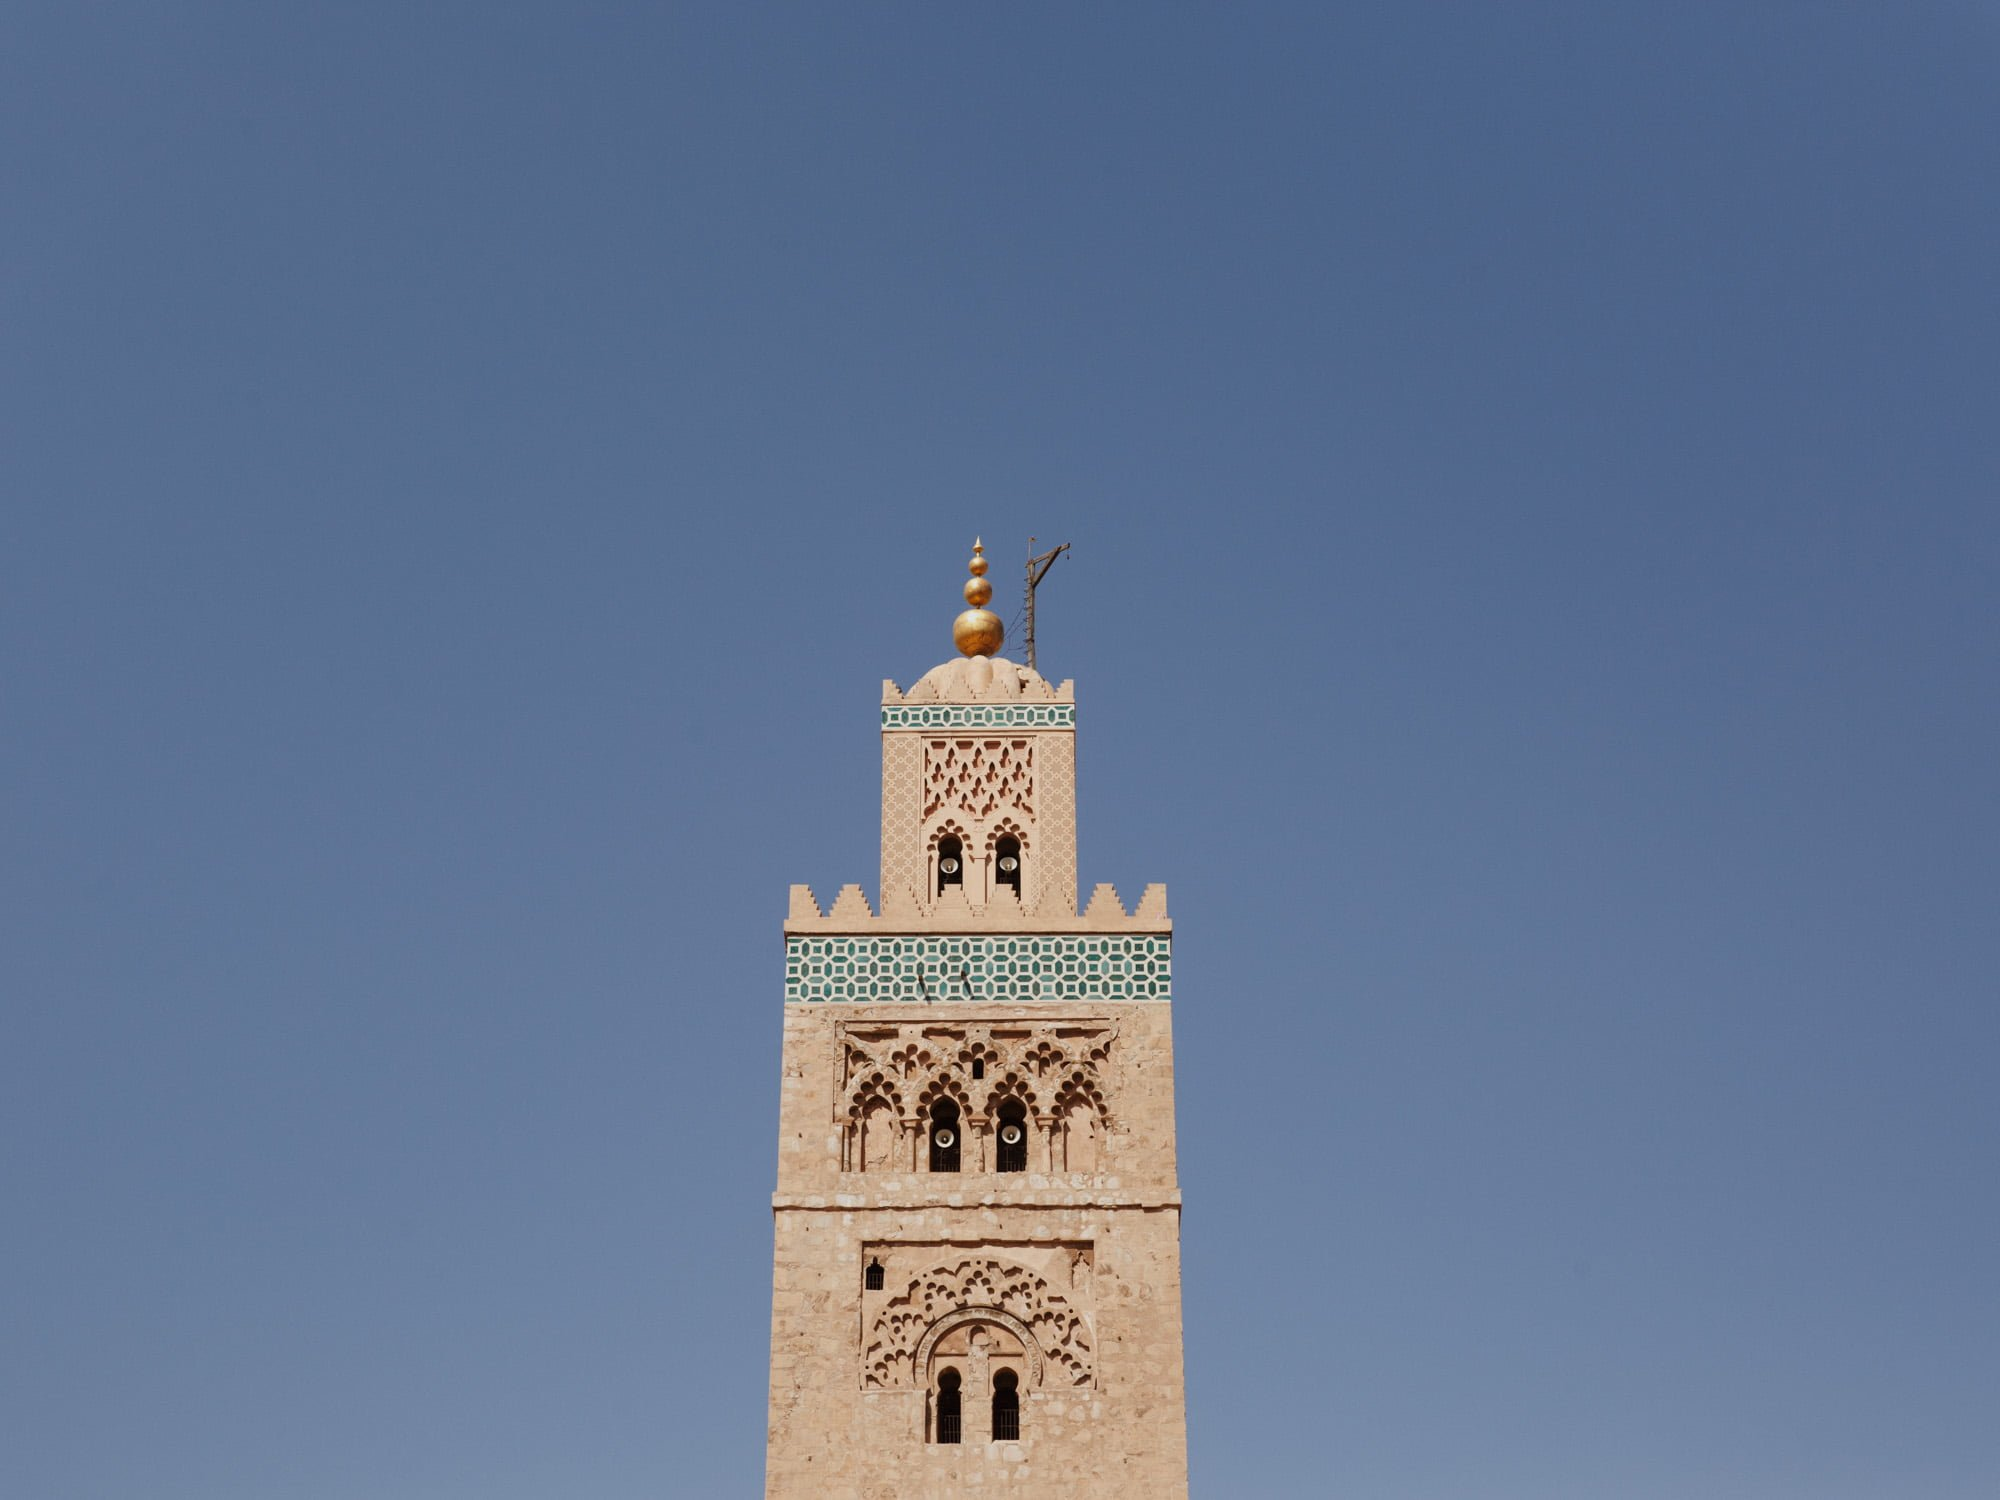 Top of the minaret tower at Koutoubia Mosque includes a dome, a spire with gilded copper balls (jamur) and a gibbet like flagpole